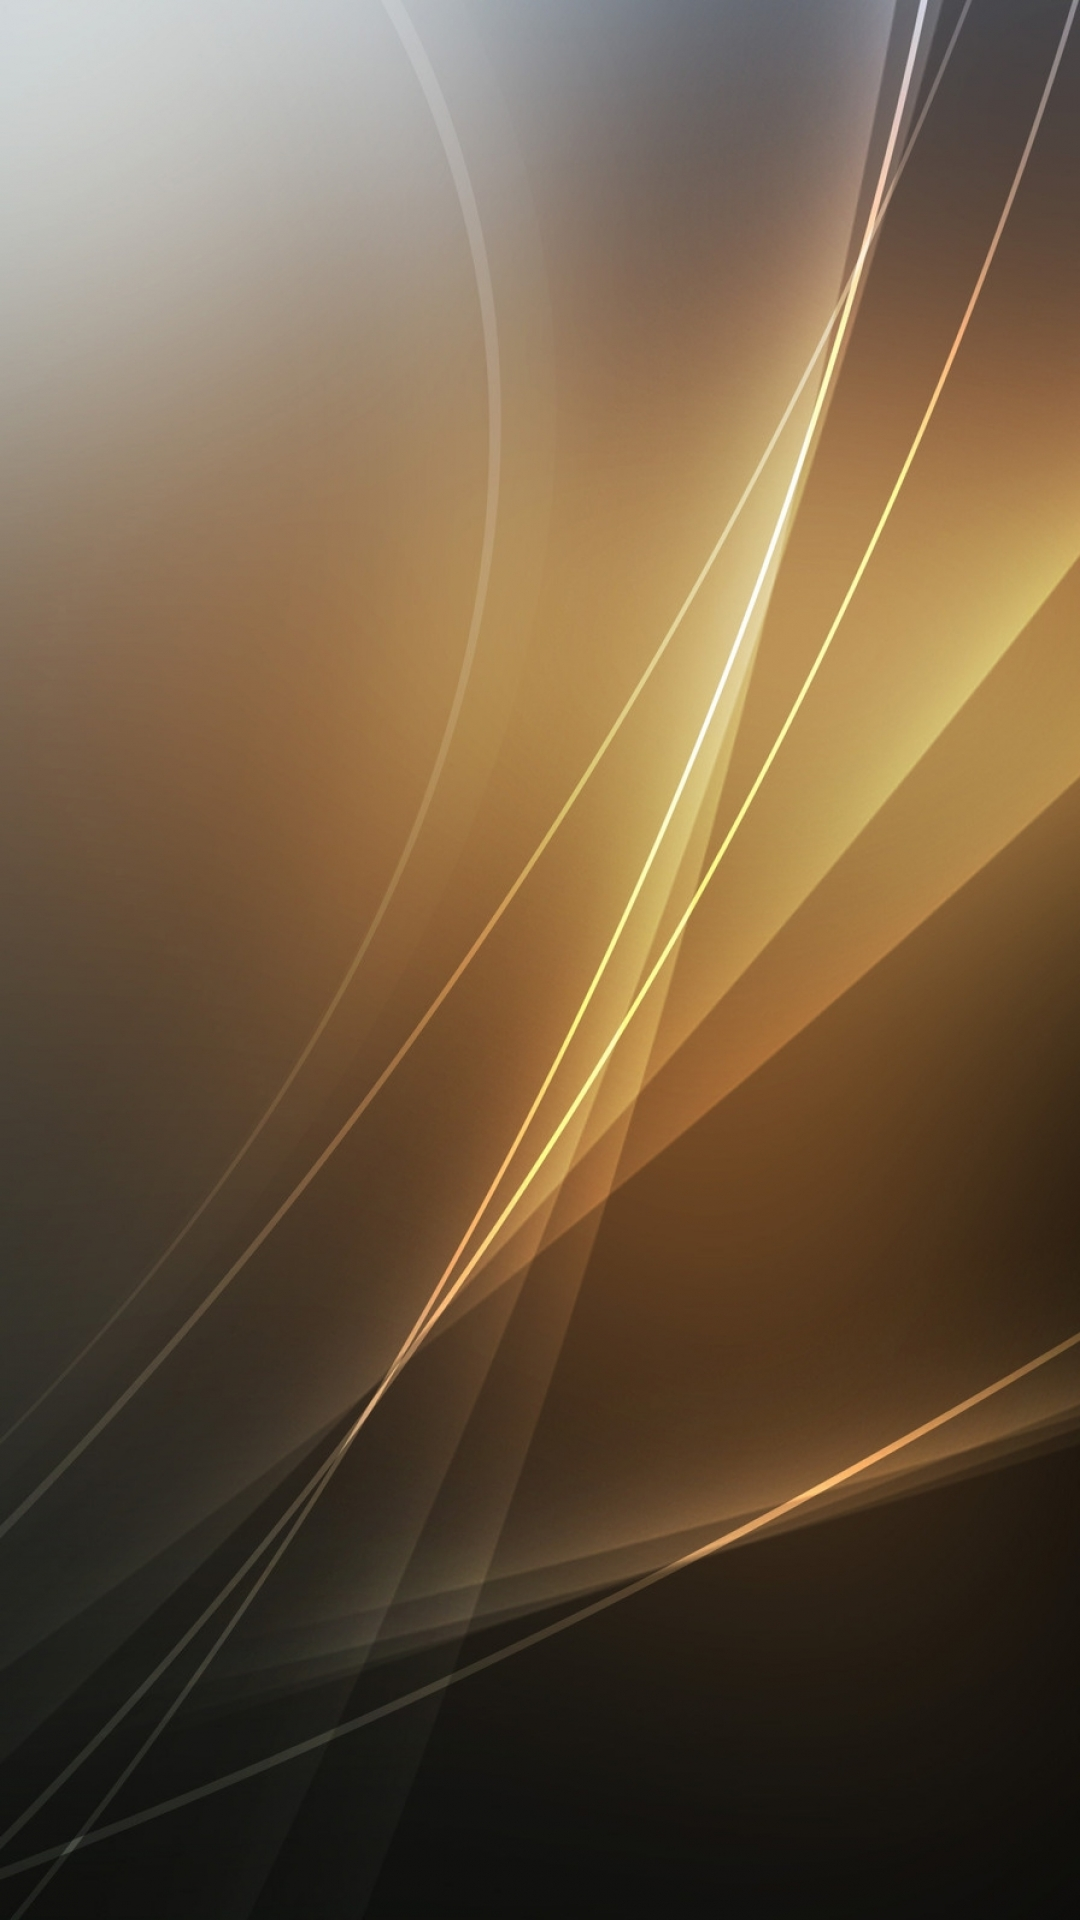 gold iphone wallpaper gold wallpaper iphone 6 33 dzbc org 10716